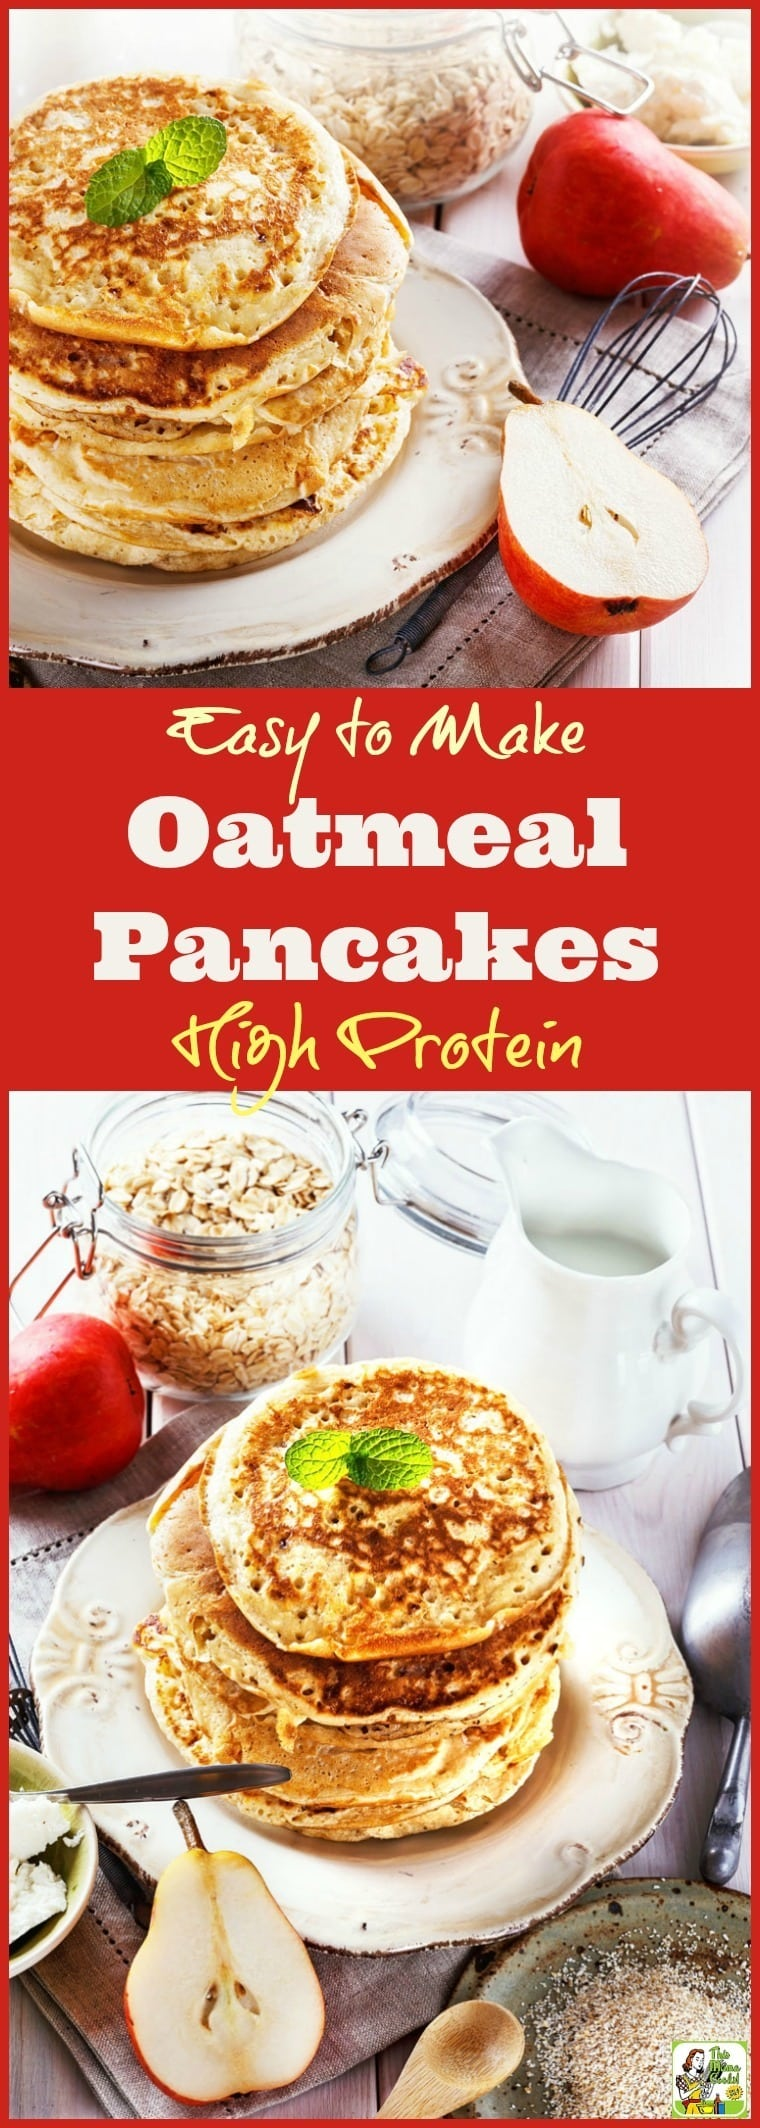 This oatmeal and Greek yogurt protein pancake recipe is easy to make and naturally gluten free. Click to learn how to cook up a batch of Easy to Make High Protein Oatmeal Pancakes for breakfast or brinner!